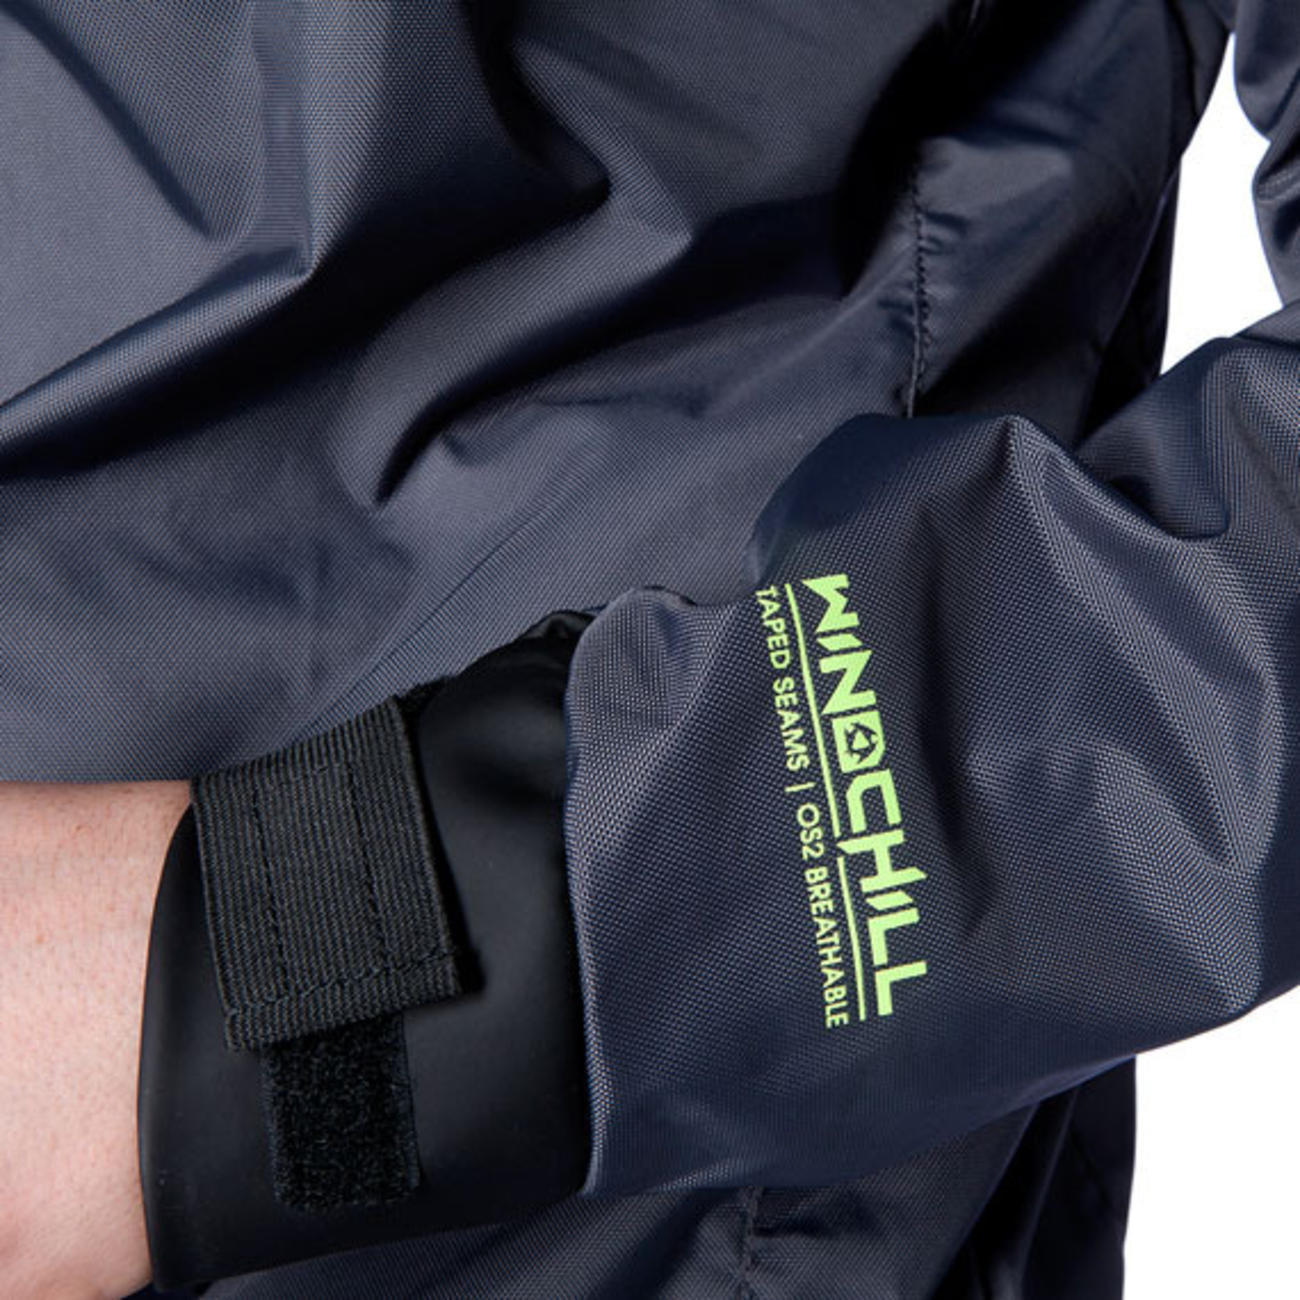 Windstopper Overlay For Wetsuit/drysuit PUナイロンパドリングジャケット